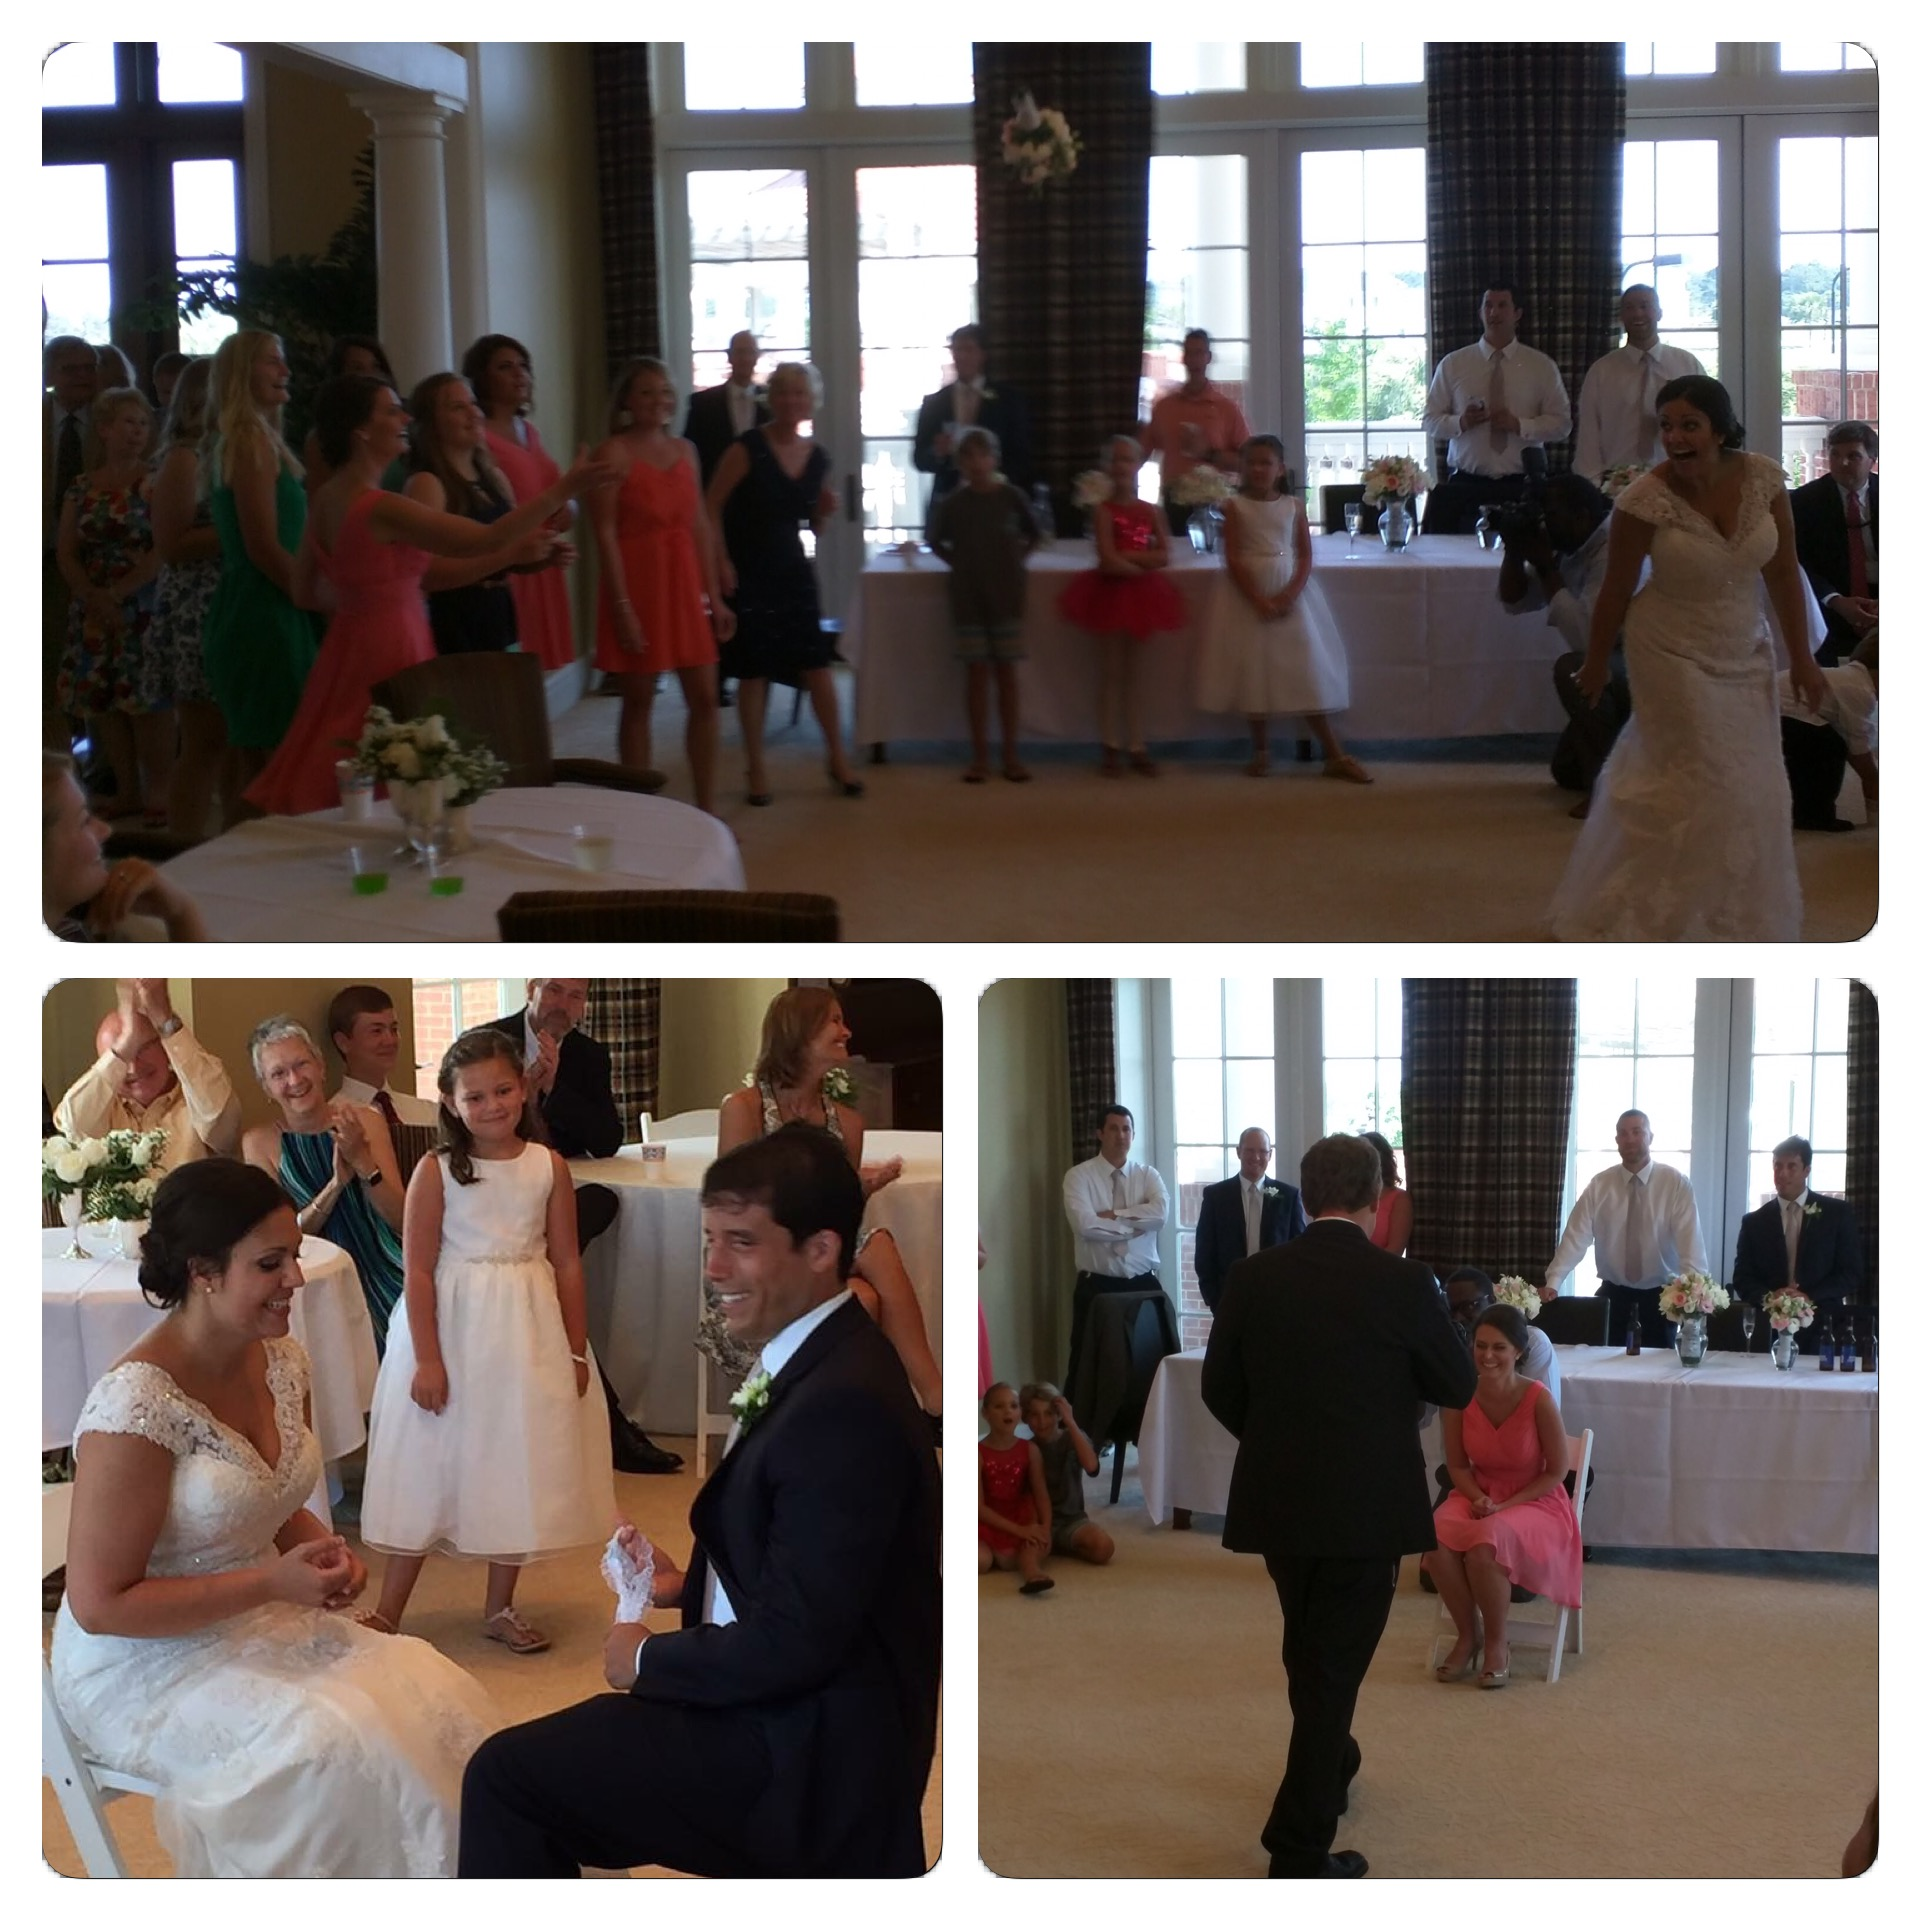 A few of the scenes from the bouquet toss/garter toss.